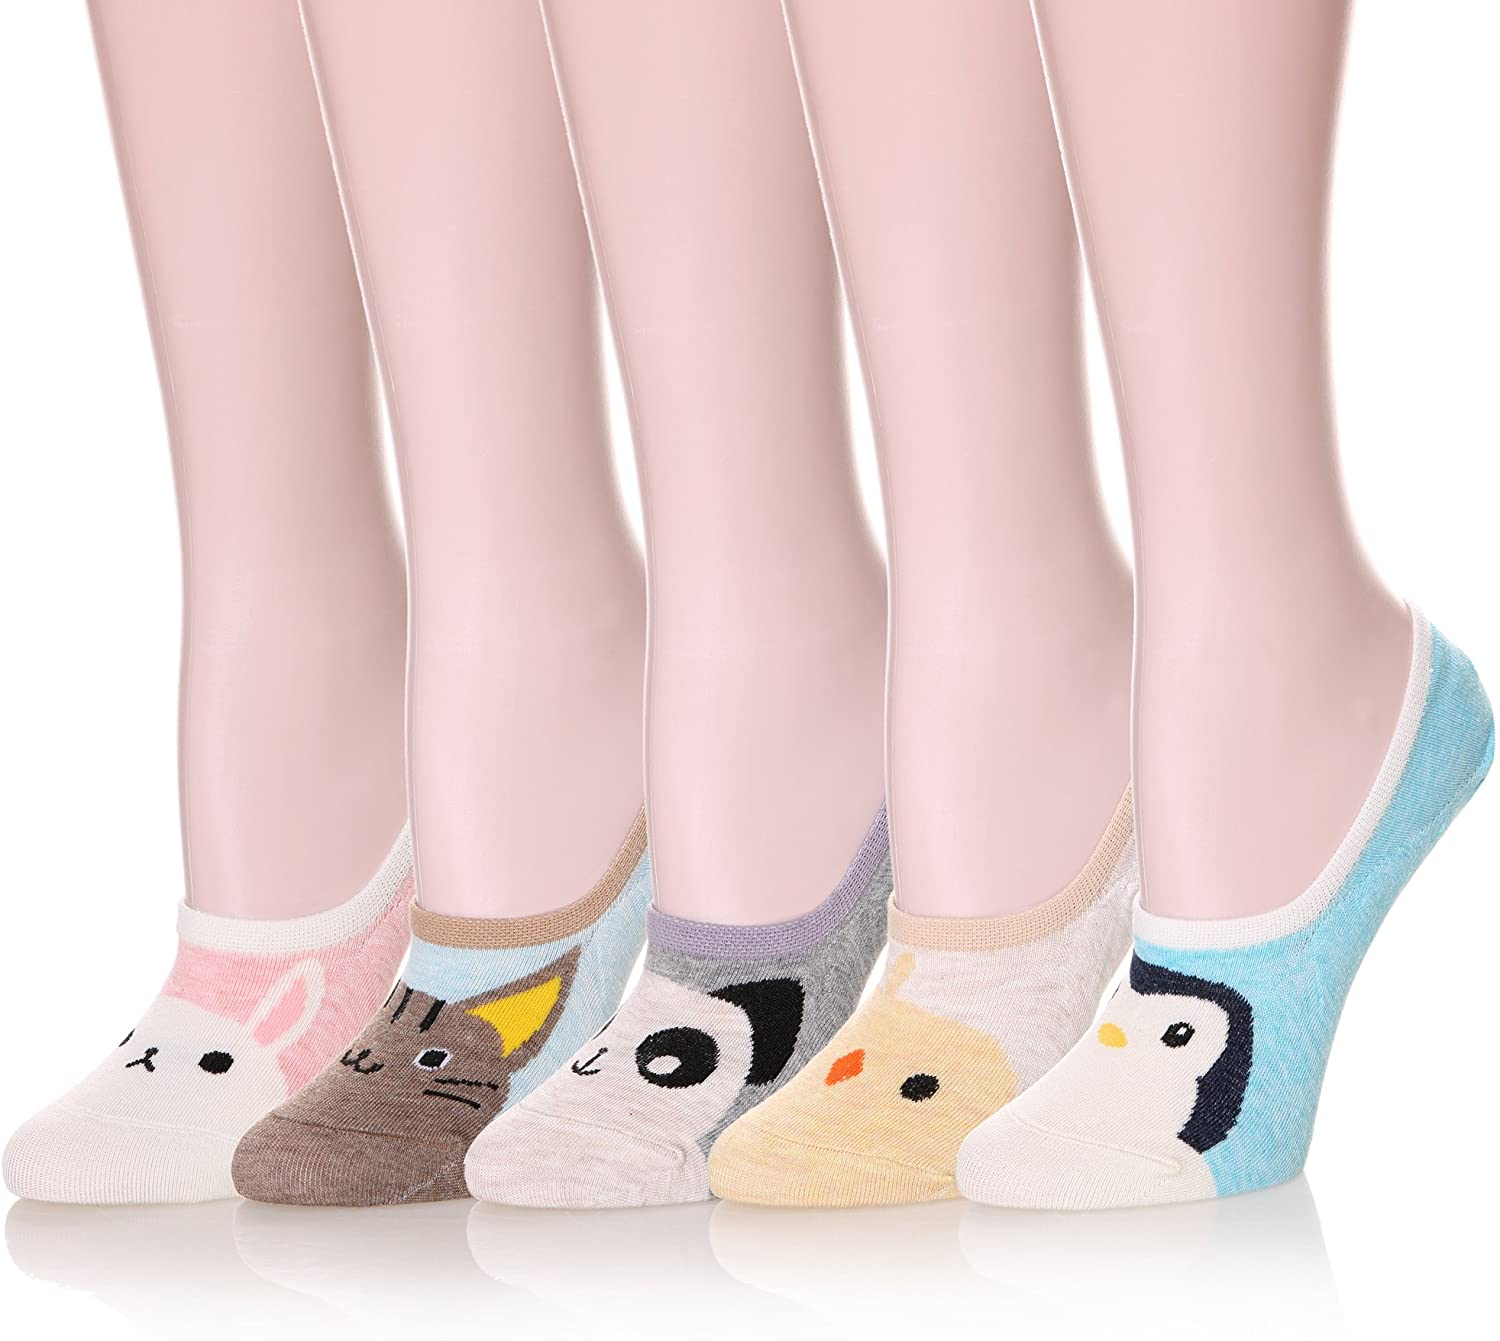 Color City Womens Novelty Cute Funny Ankle Socks - Cartoon Animal No Show Low Cut Socks